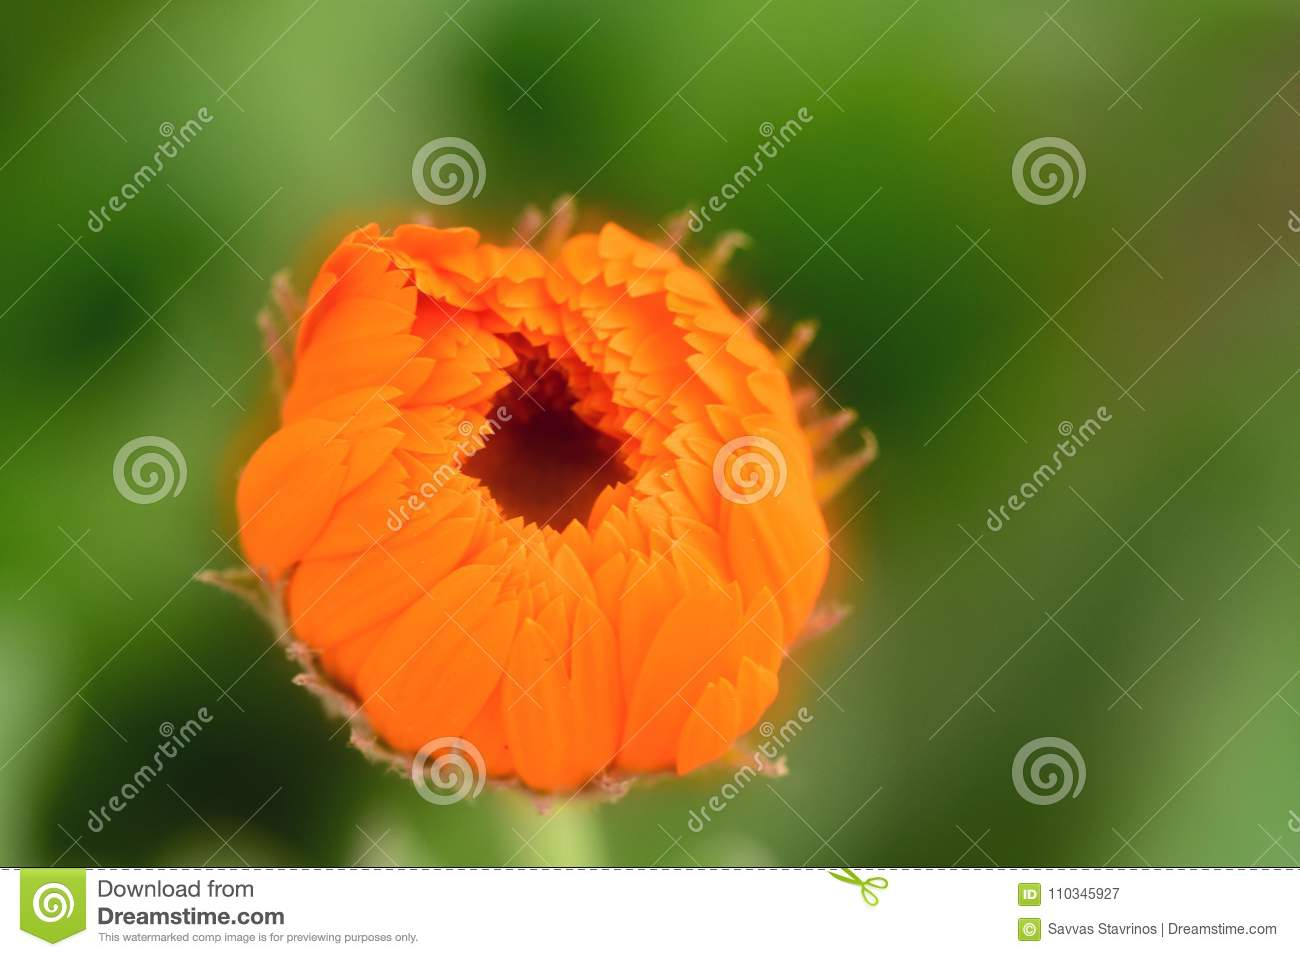 Plants With Daisy Like Flowers Stock Image Image Of Around Green